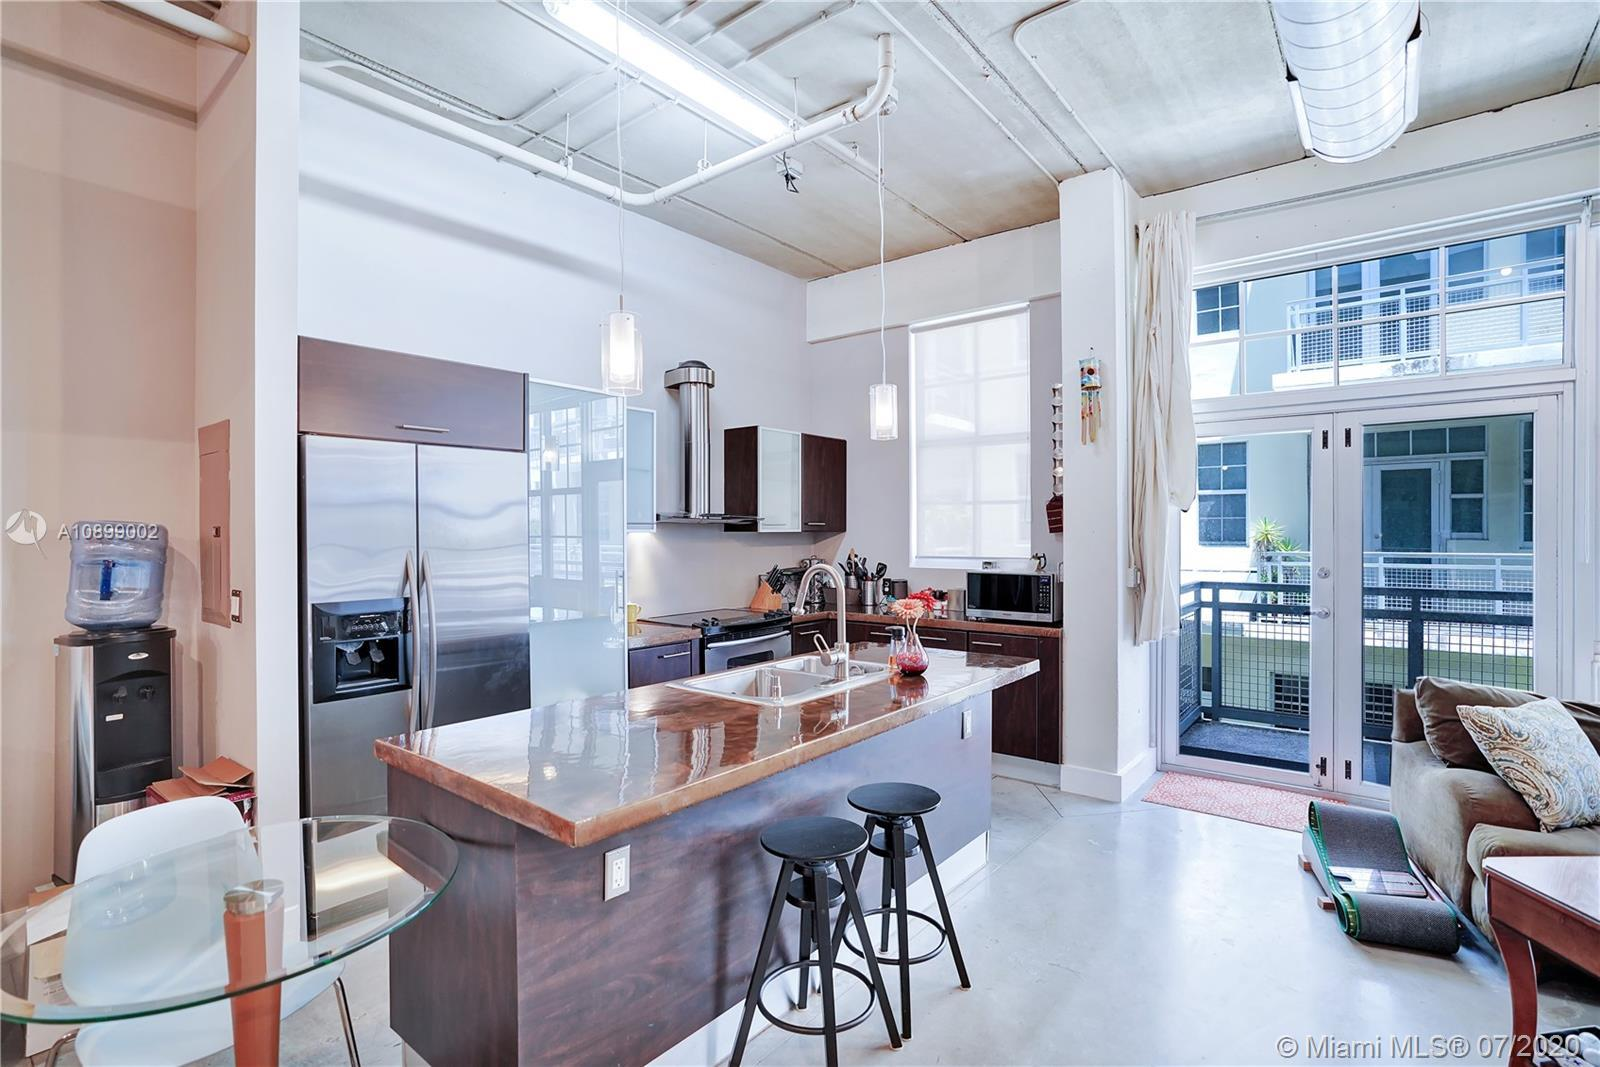 Beautiful and modern Loft featuring an expansive open floor plan with 12 ft ceilings, exposed duct work, polished concrete floors, stainless steel Kitchen Aid appliances, an upgraded bathroom, huge walk-in closet, hurricane impact windows, and window treatments. Avenue Lofts offers you a great location in the heart of the extremely popular Flagler Village area and transportation hub near downtown Fort Lauderdale. Building amenities include a rooftop pool, lounge, barbeque, and gym.  